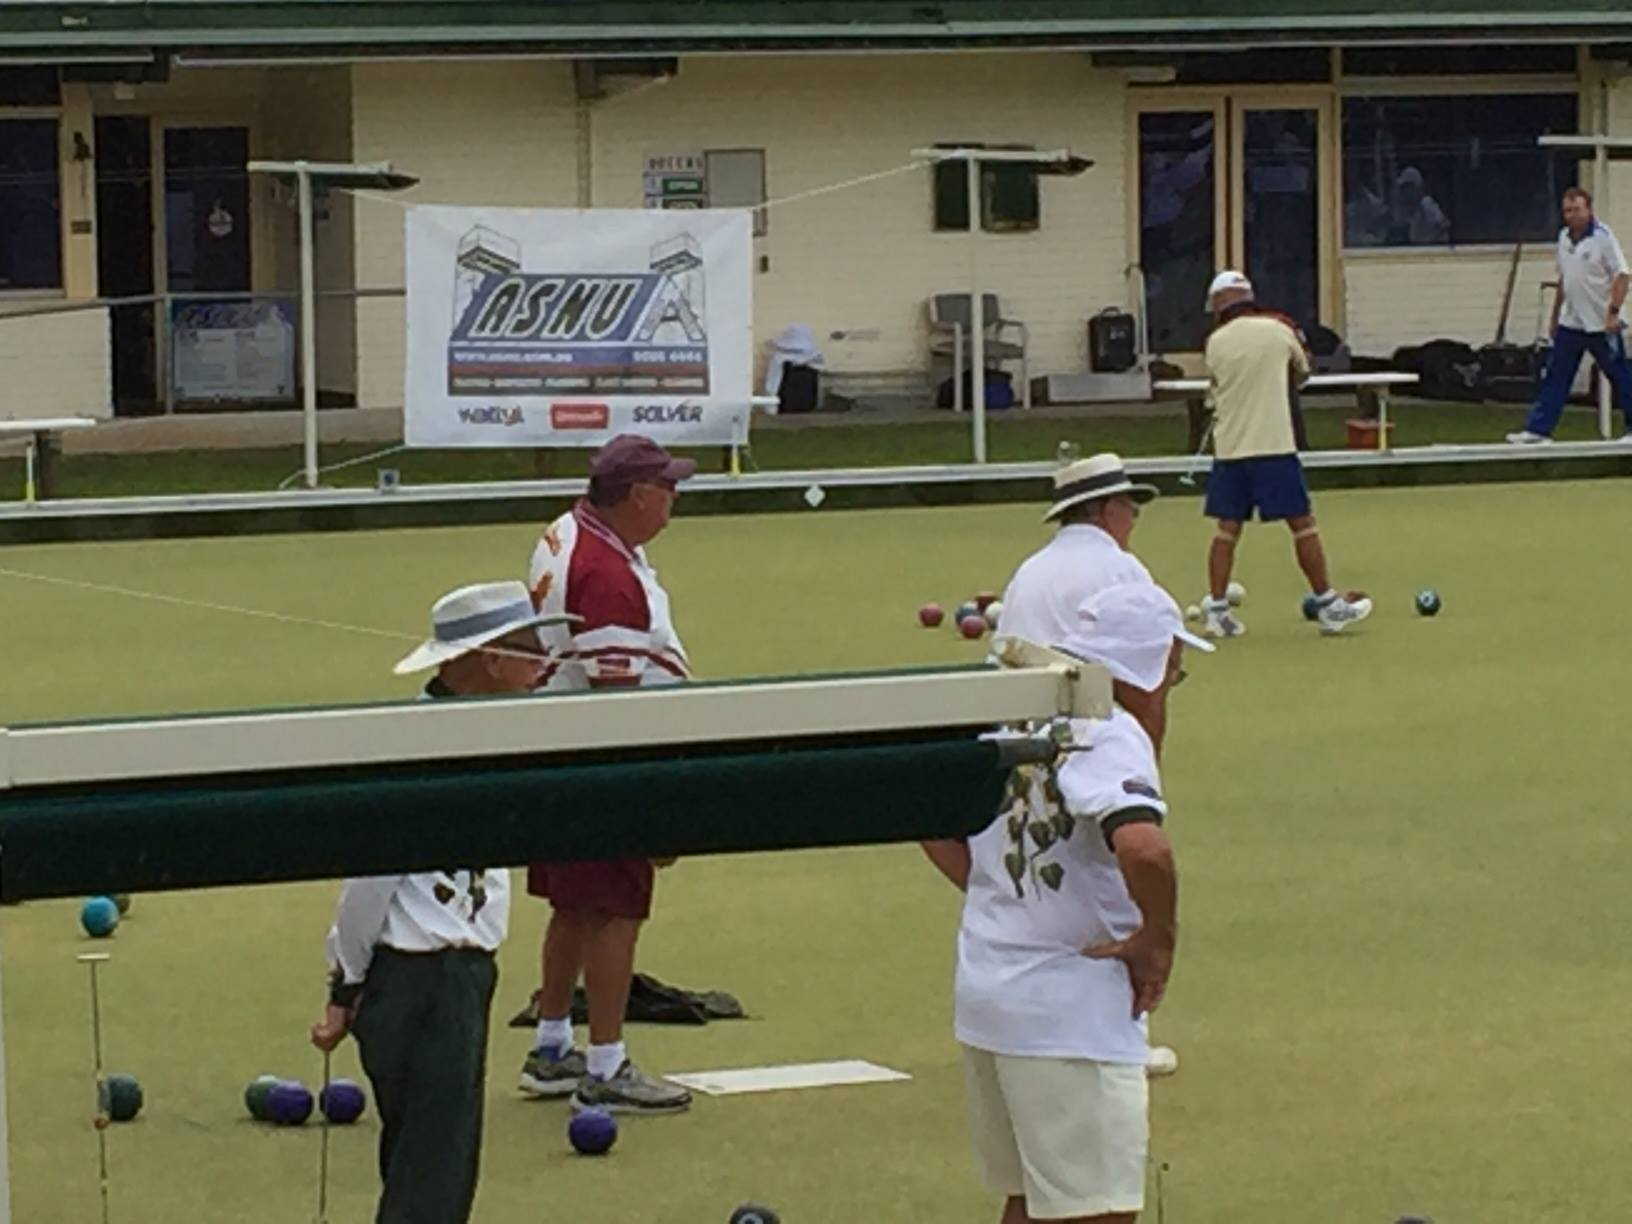 ASNU Painted and Sponsored ST Ives Bowling Club